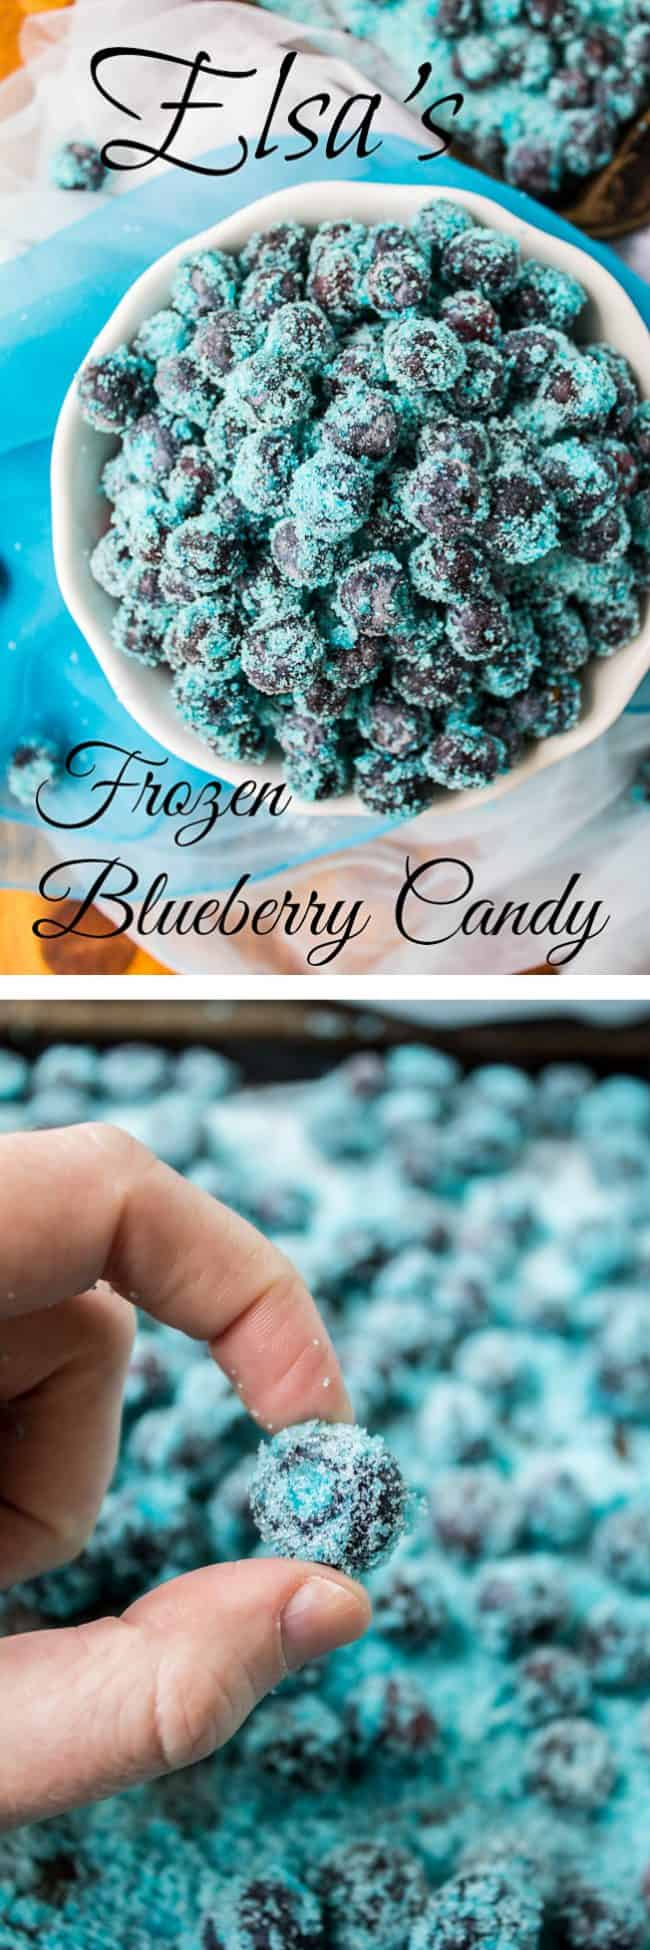 Elsa's Frozen Blueberry Candy from The Food Charlatan